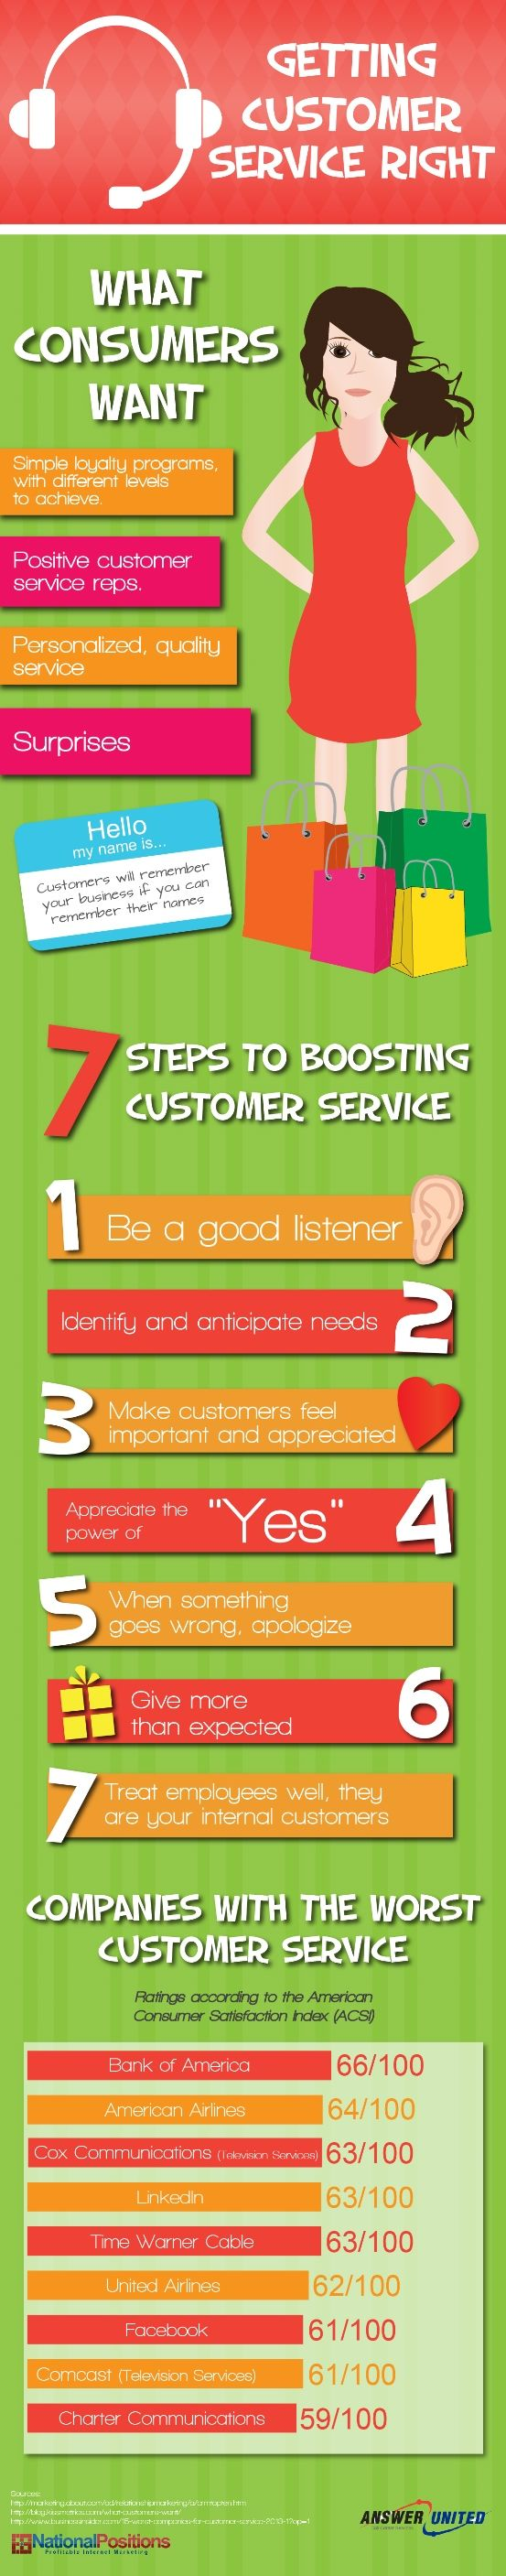 Today's infographic is all about getting customer service right. This infographic dives into what customers want and ways to boost customer service.